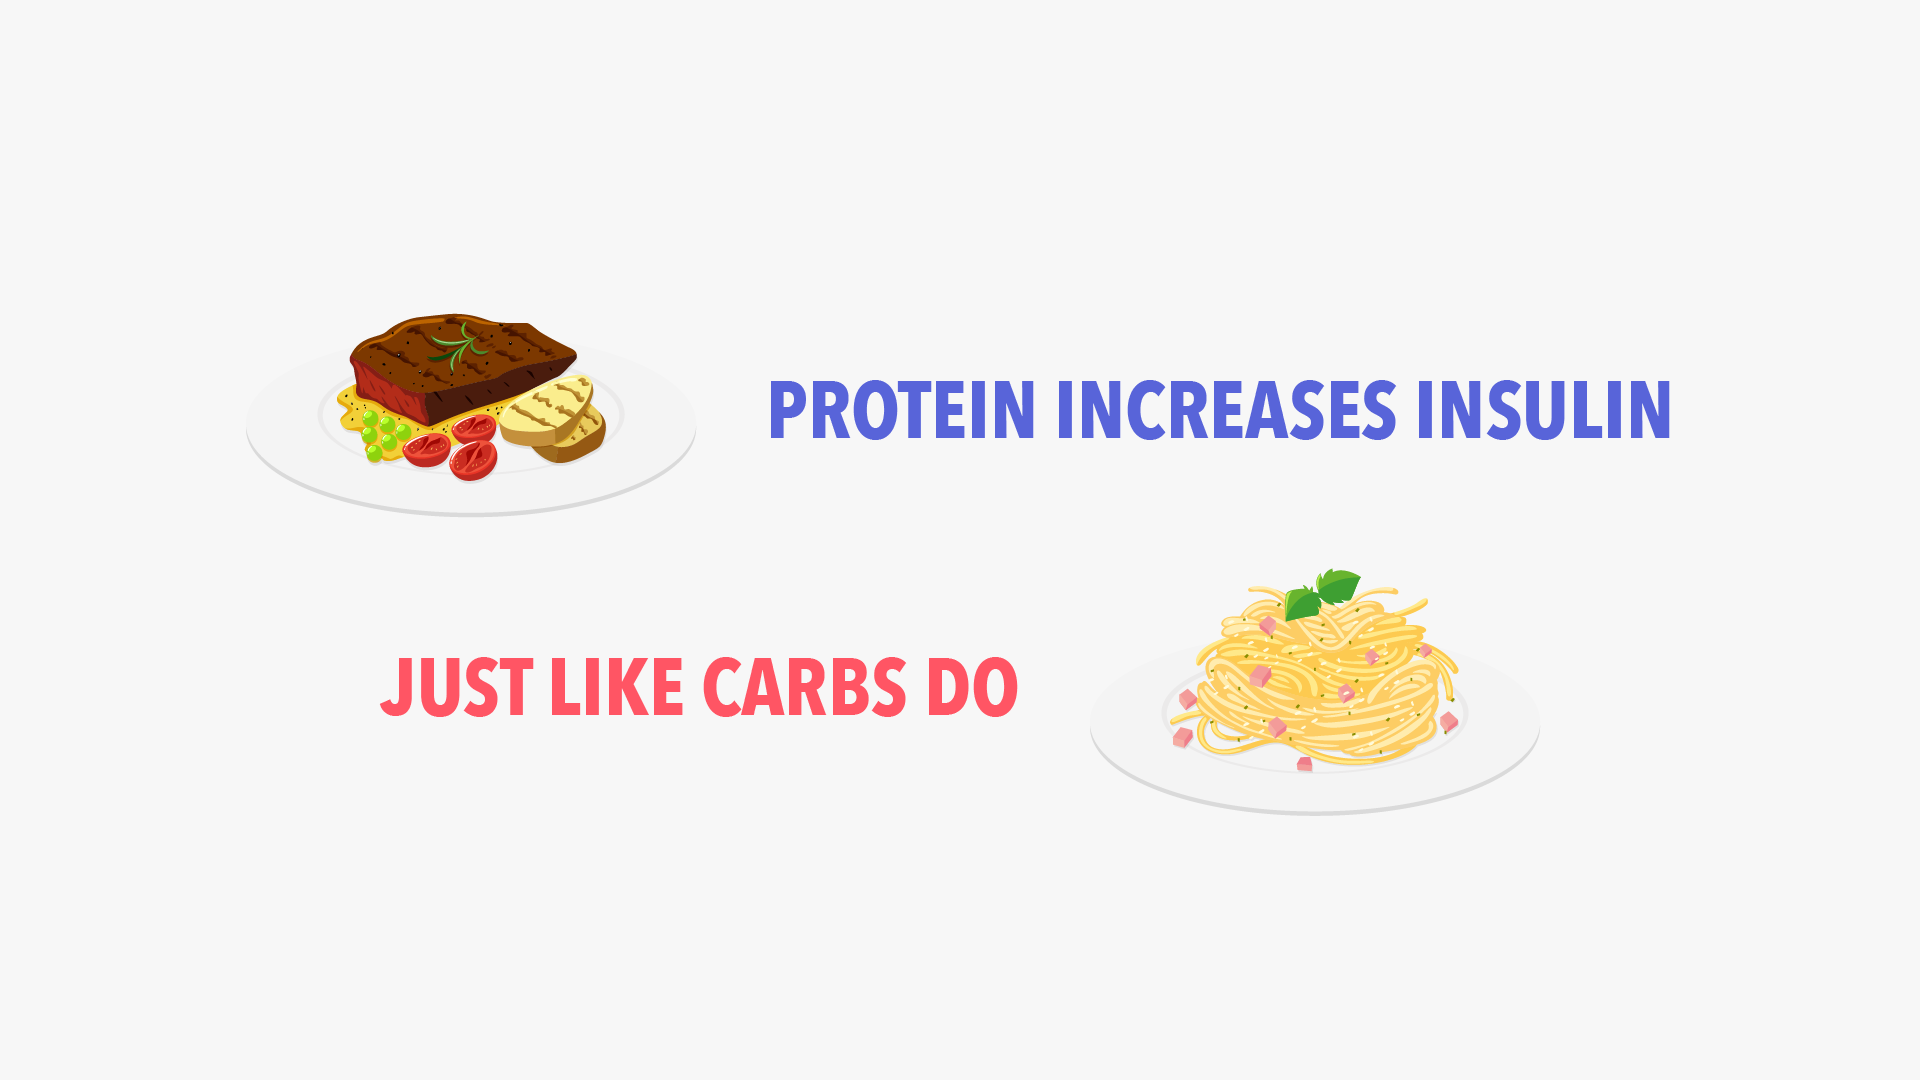 Protein increases insulin just like carbs do